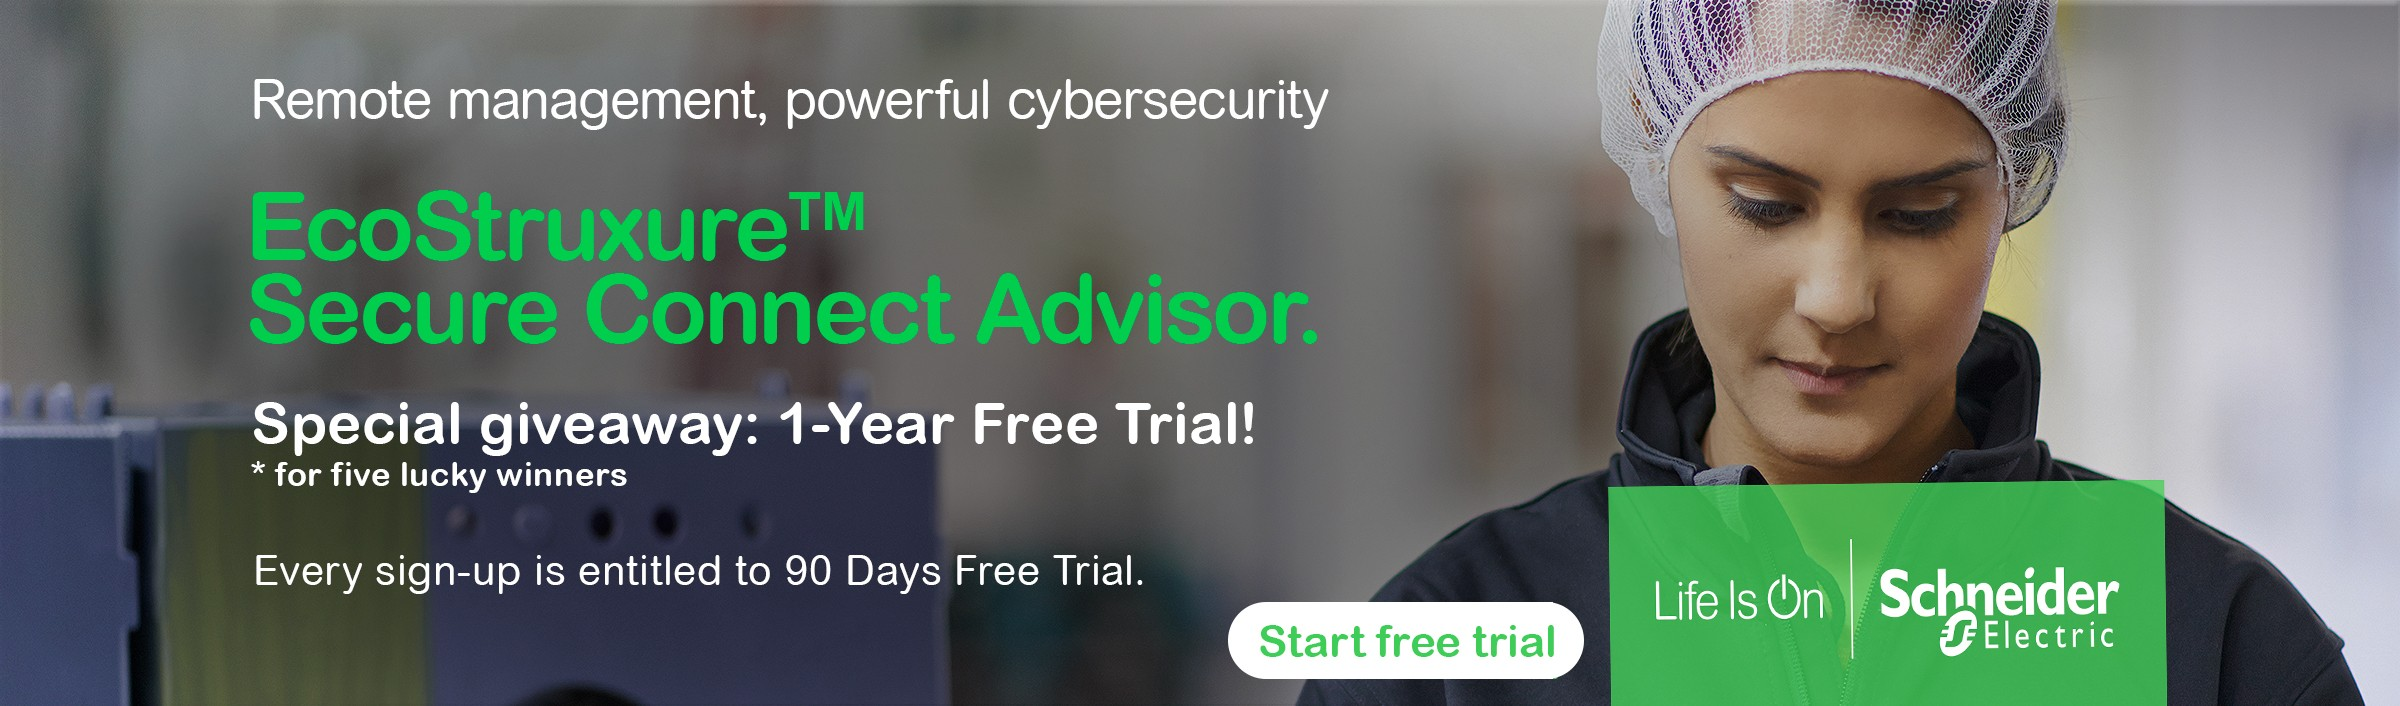 SecureConnectAdvisor_banner_2400x706